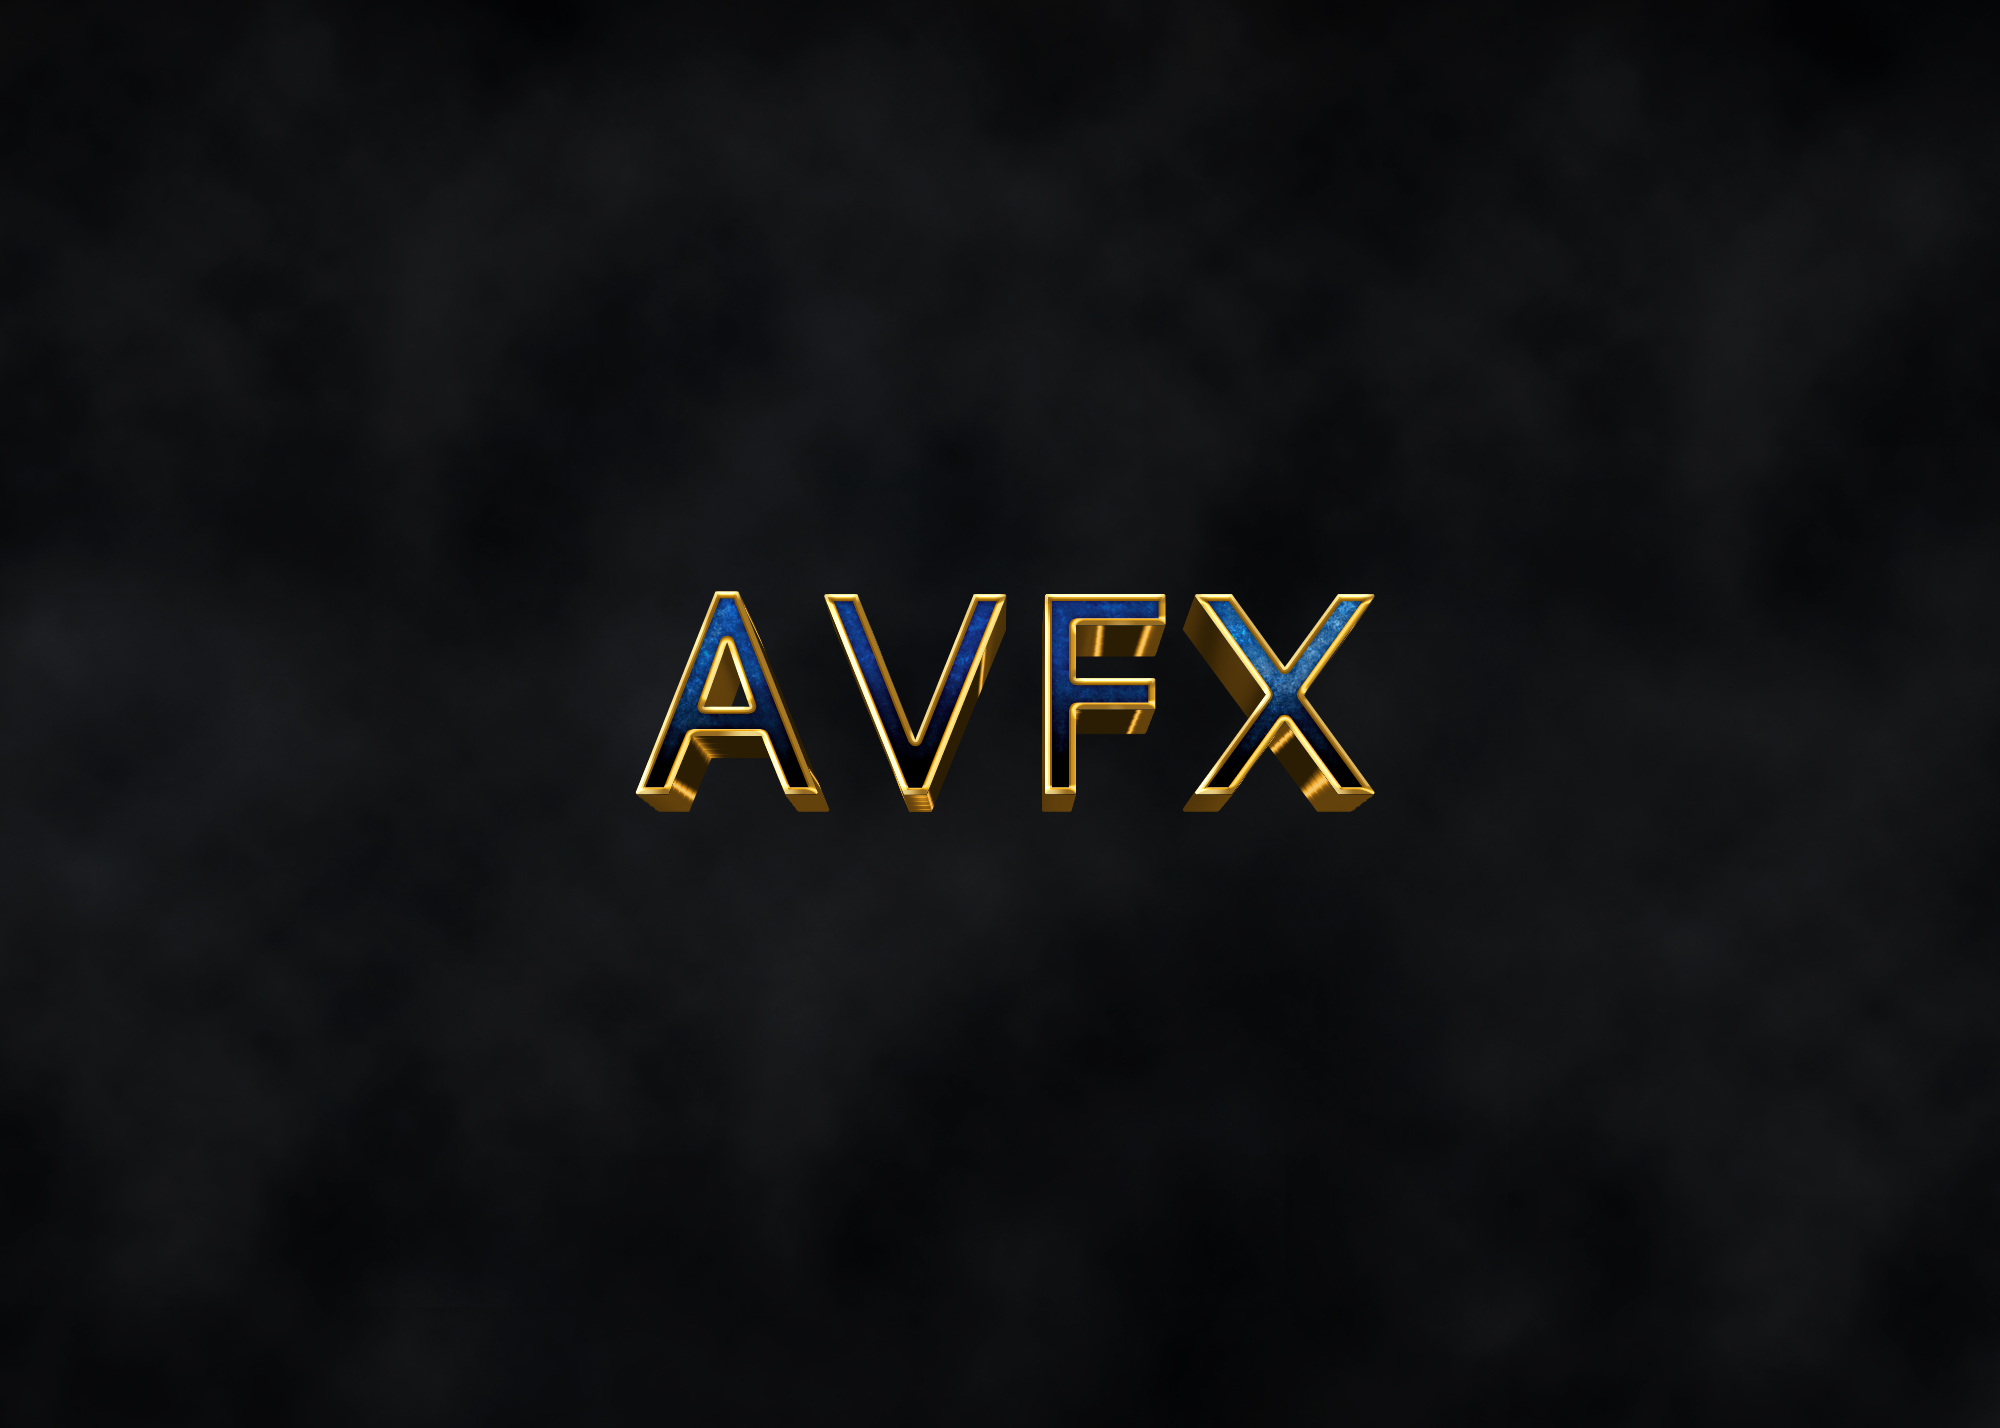 aavfx